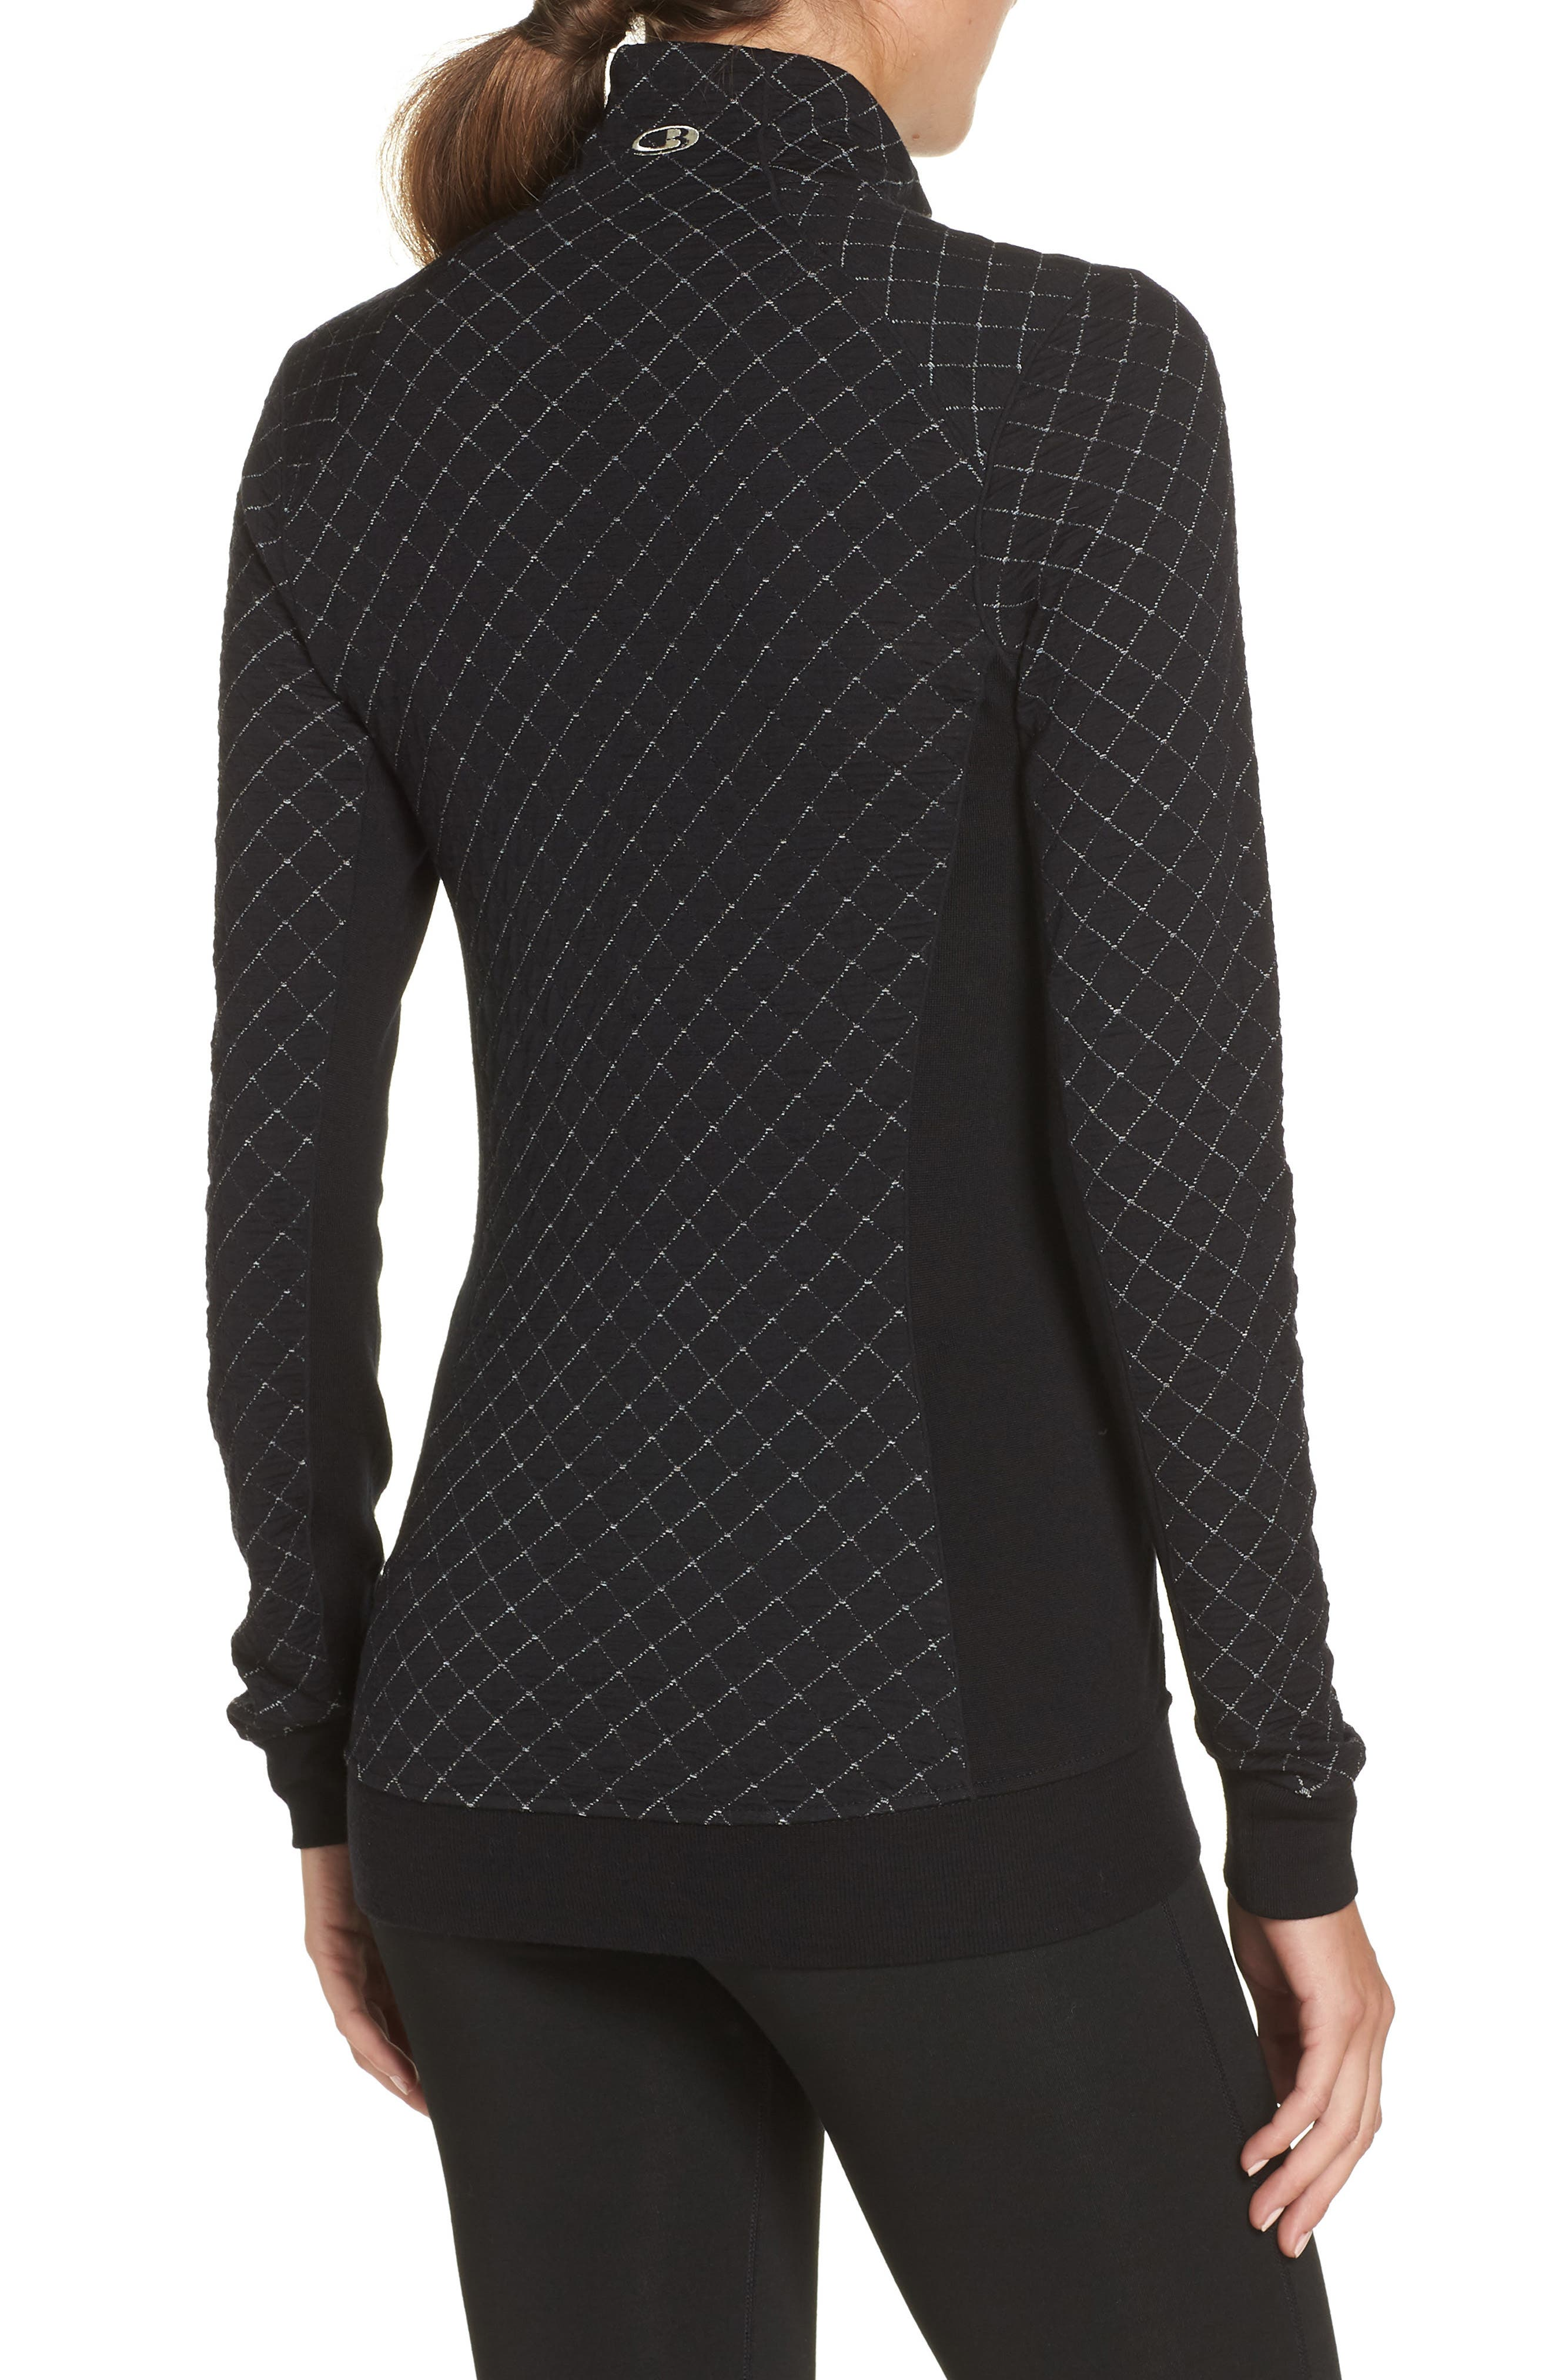 Affinity Thermo Long Sleeve Half Zip Pullover,                             Alternate thumbnail 2, color,                             BLACK